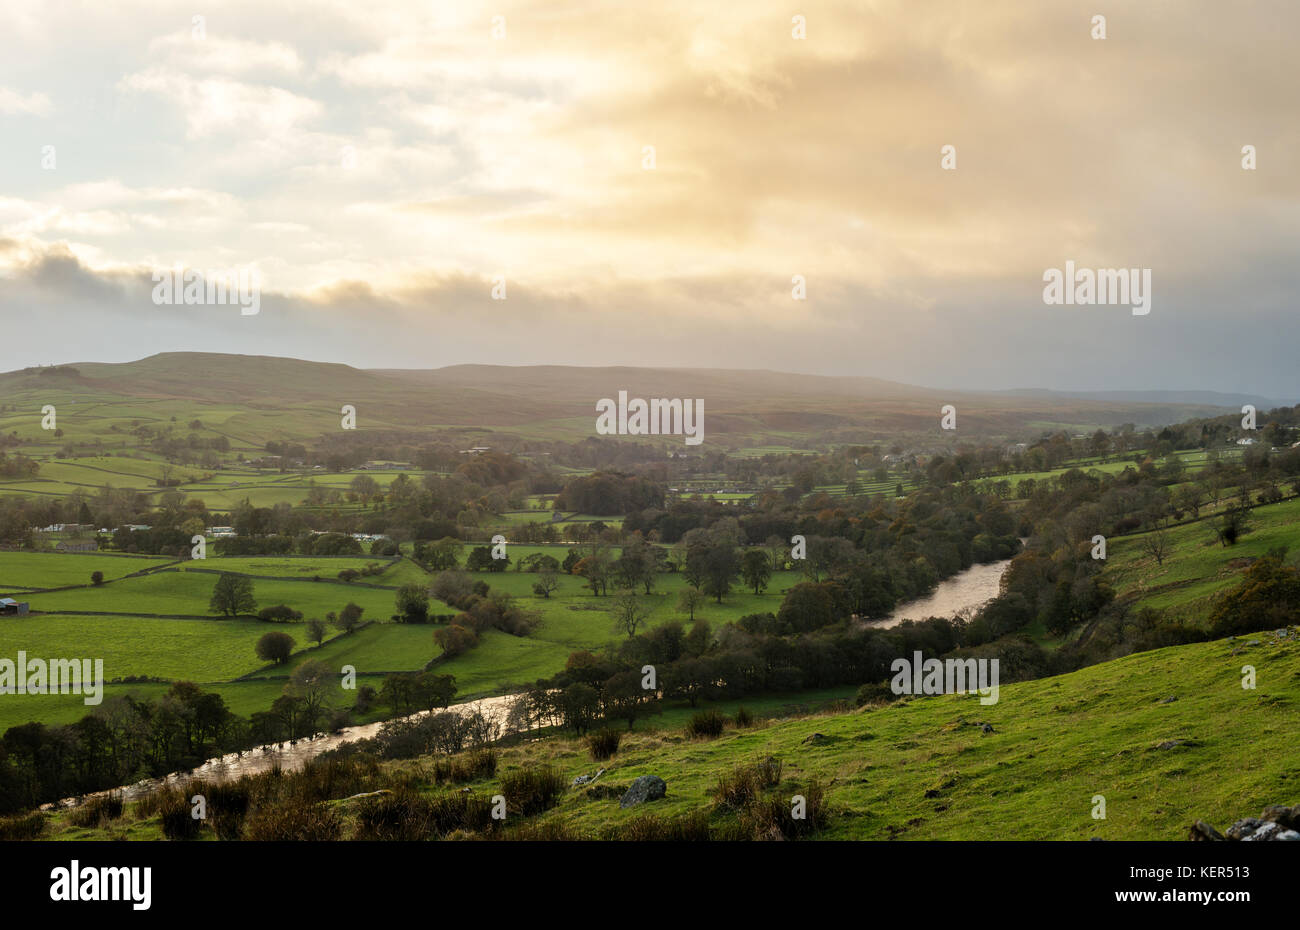 The River Tees passing through Upper Teesdale, North East England - Stock Image